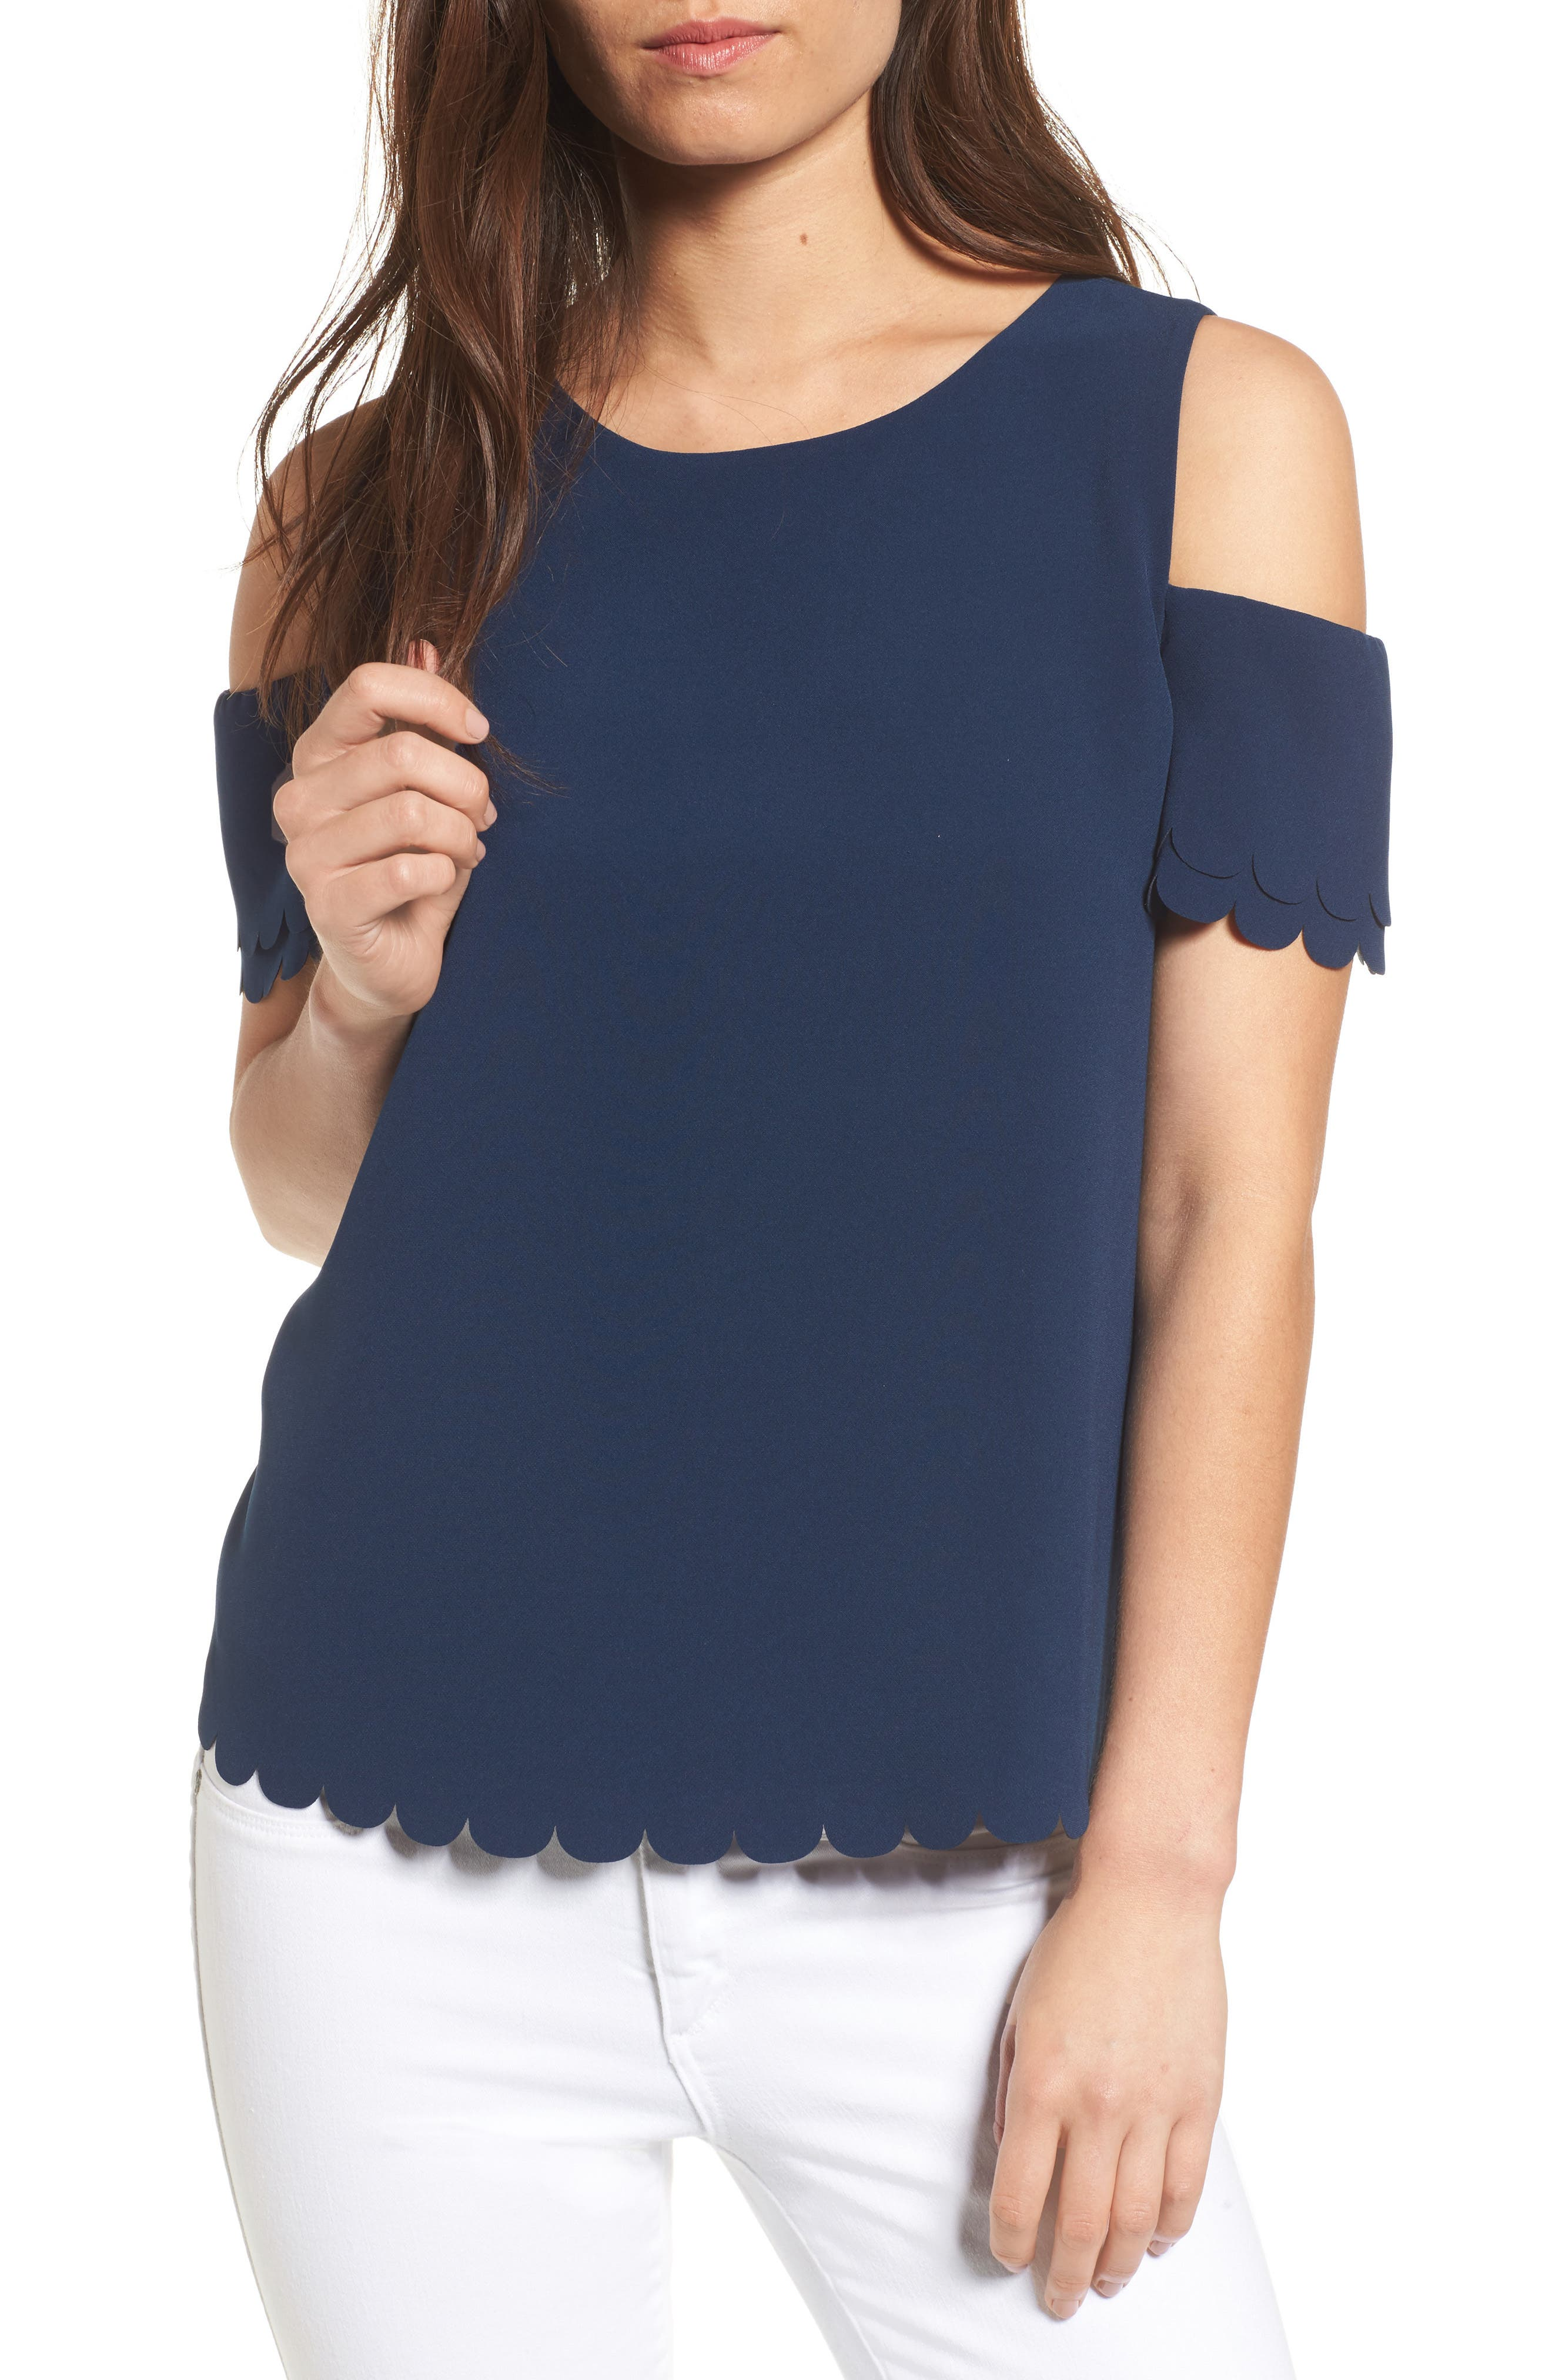 COOPER & ELLA Mila Scallop Cold Shoulder Top